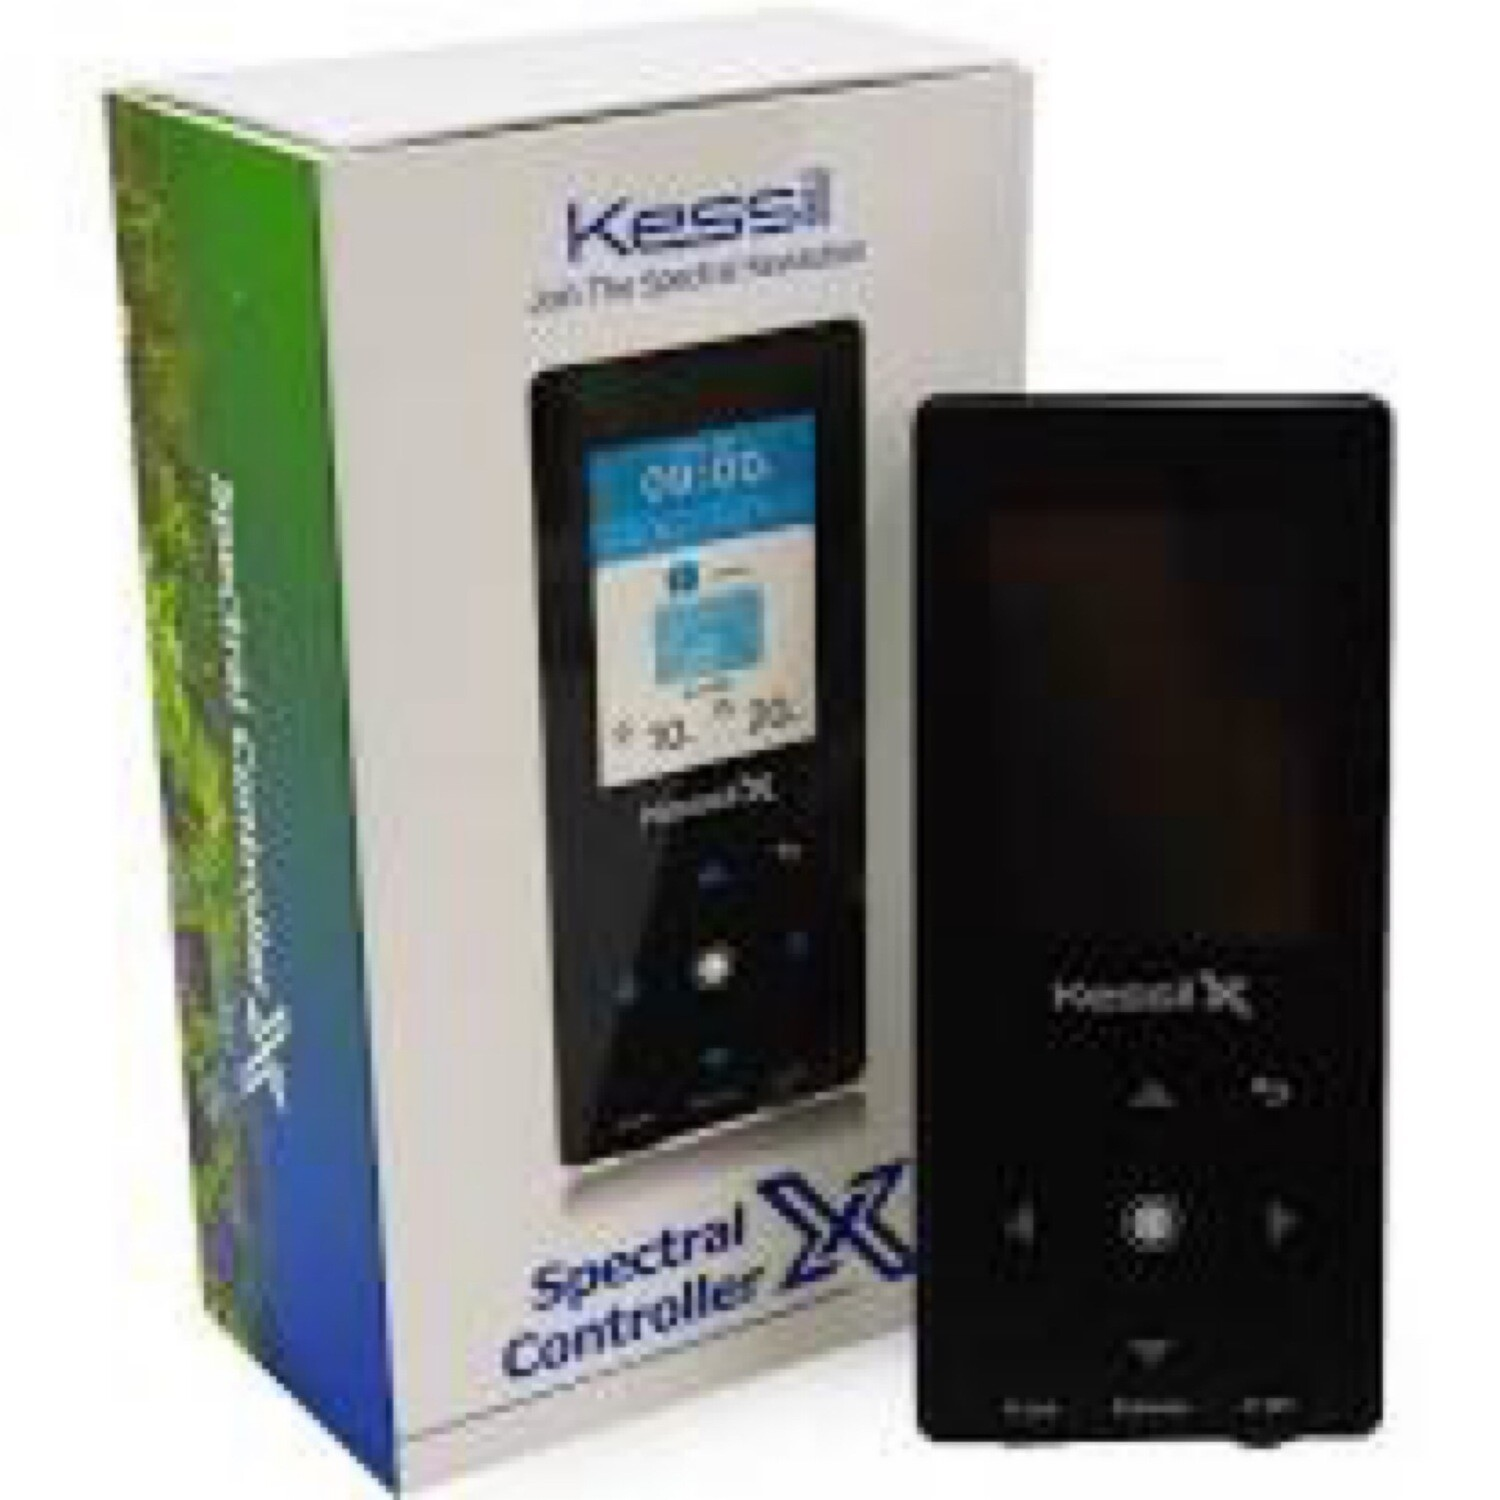 Kessil Spectral Controller X